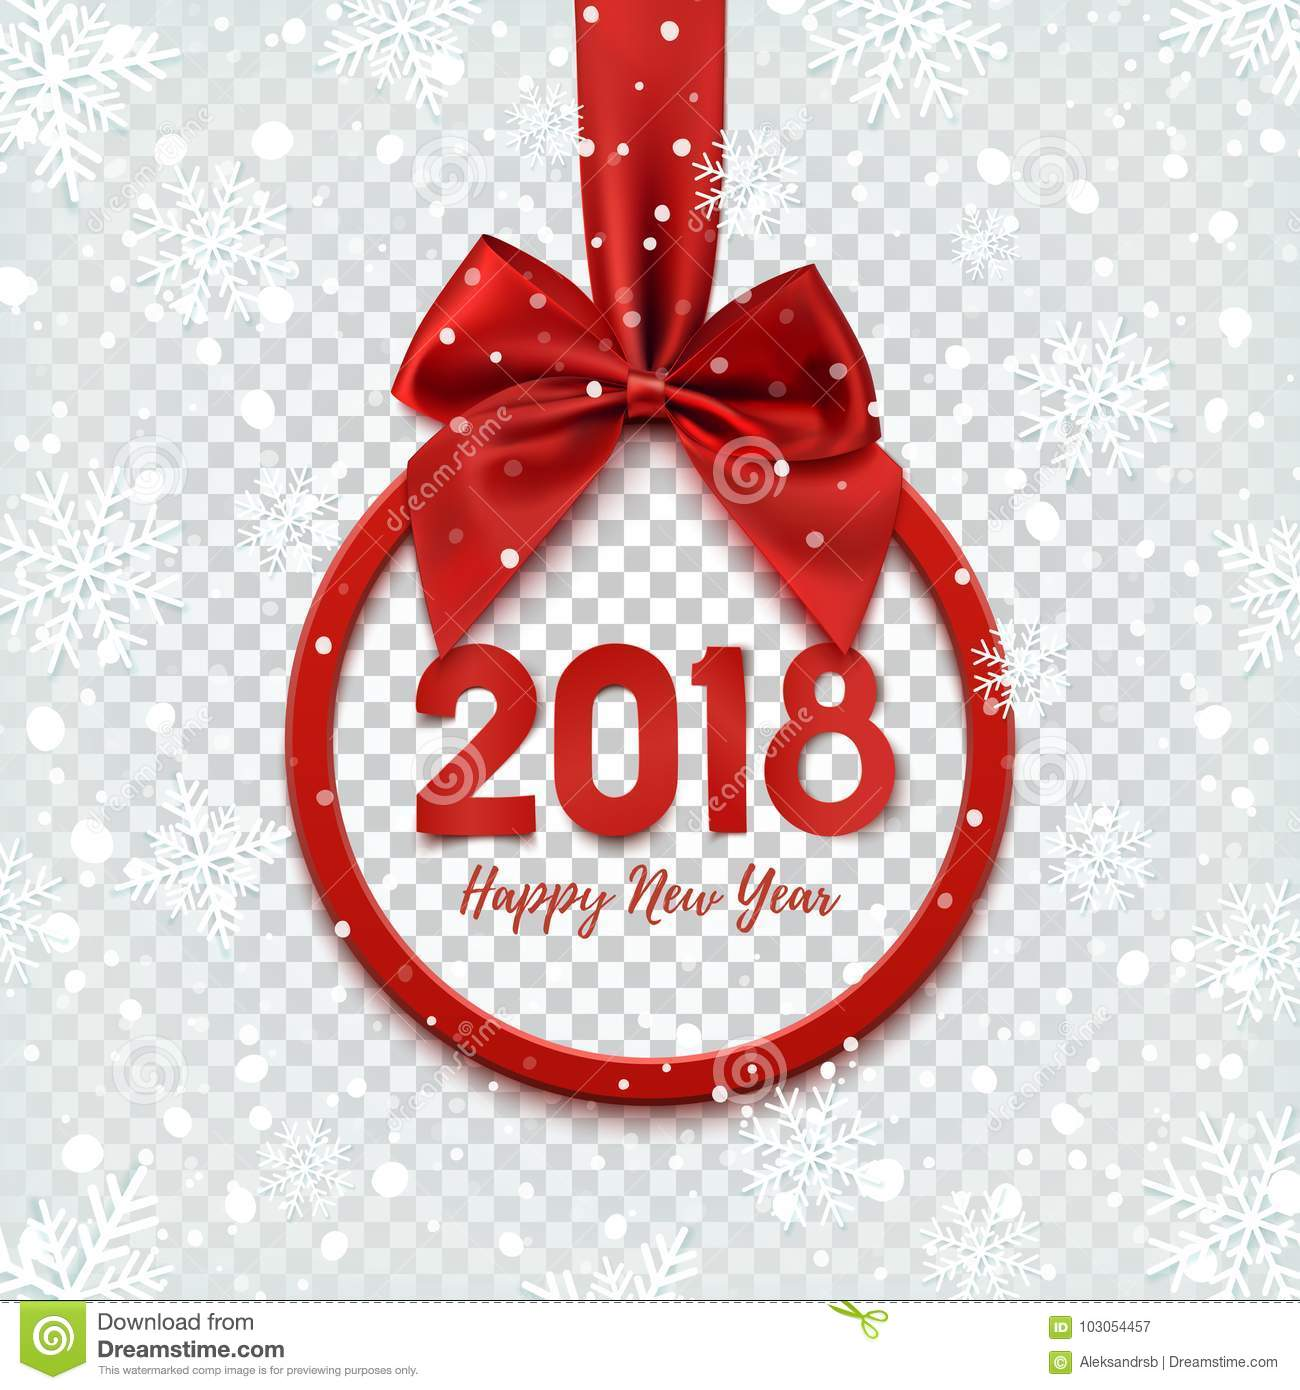 happy new year 2018 design round banner with red ribbon